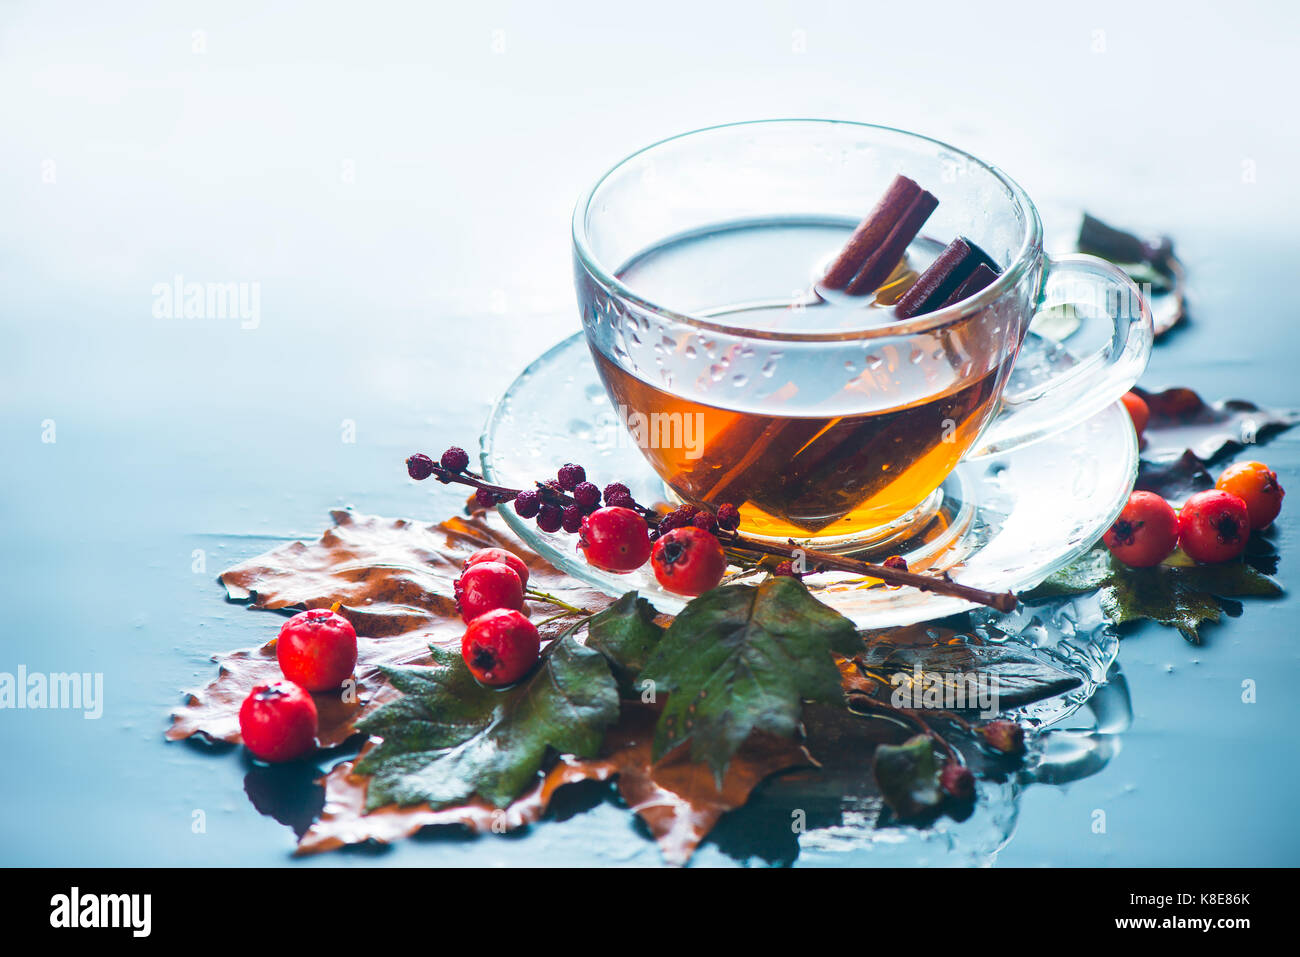 Glass tea cup in autumn still life with rain, leaves, berries on a wet background - Stock Image